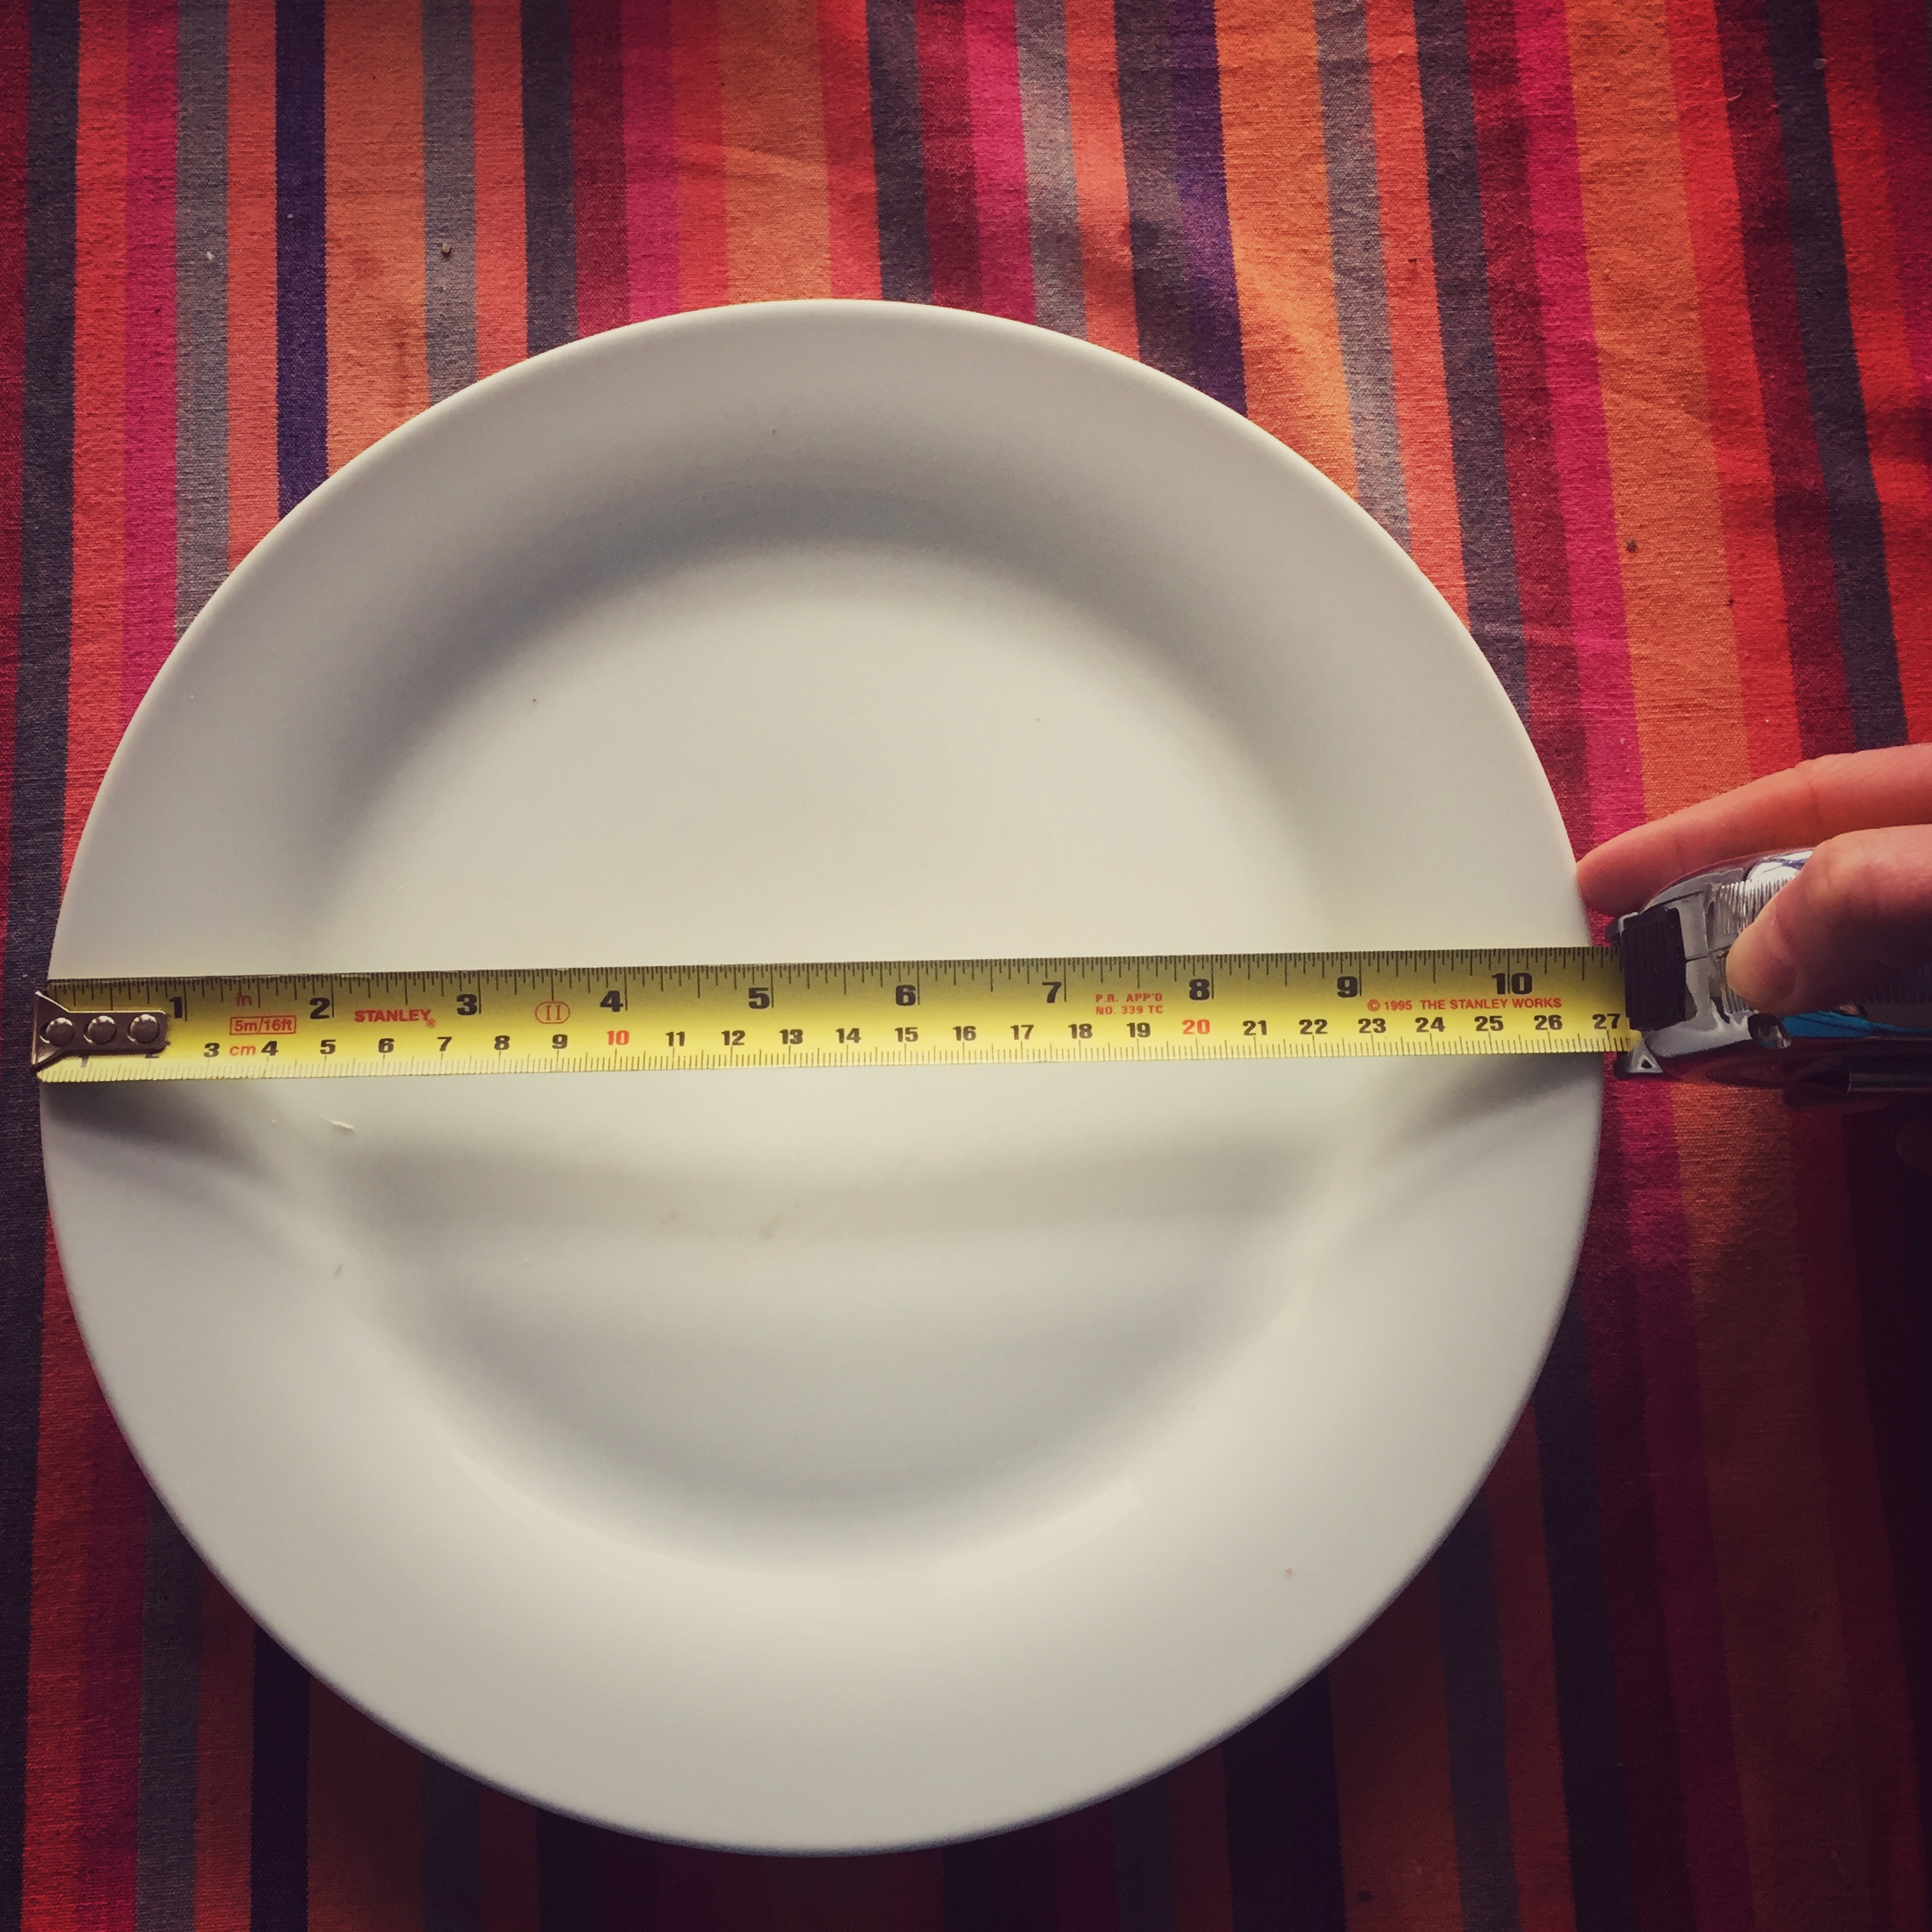 An eatwell plate is approximately 9 inches in diameter, slightly wider than the inner circle of my plates.